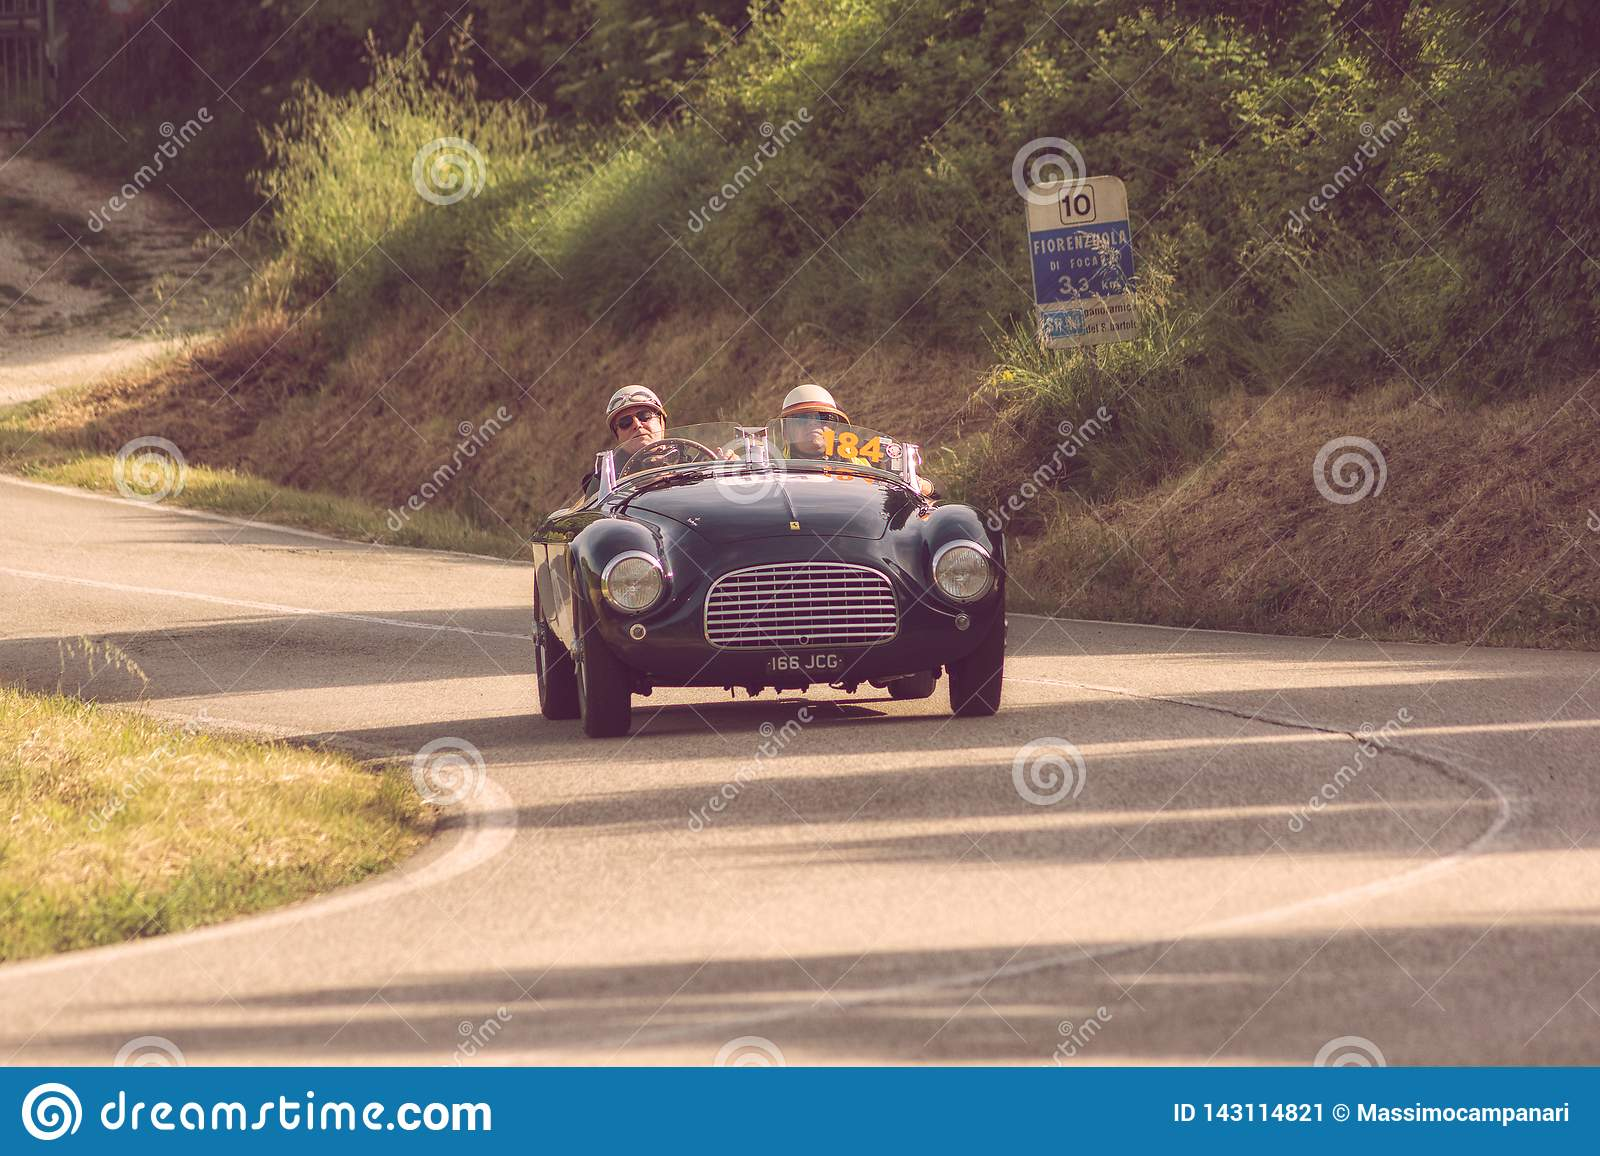 Ferrari 166 Mm Spider Touring 1950 On An Old Racing Car In Rally Mille Miglia 2018 The Famous Italian Historical Race 1927 1957 Editorial Photo Image Of Driving Giulietta 143114821